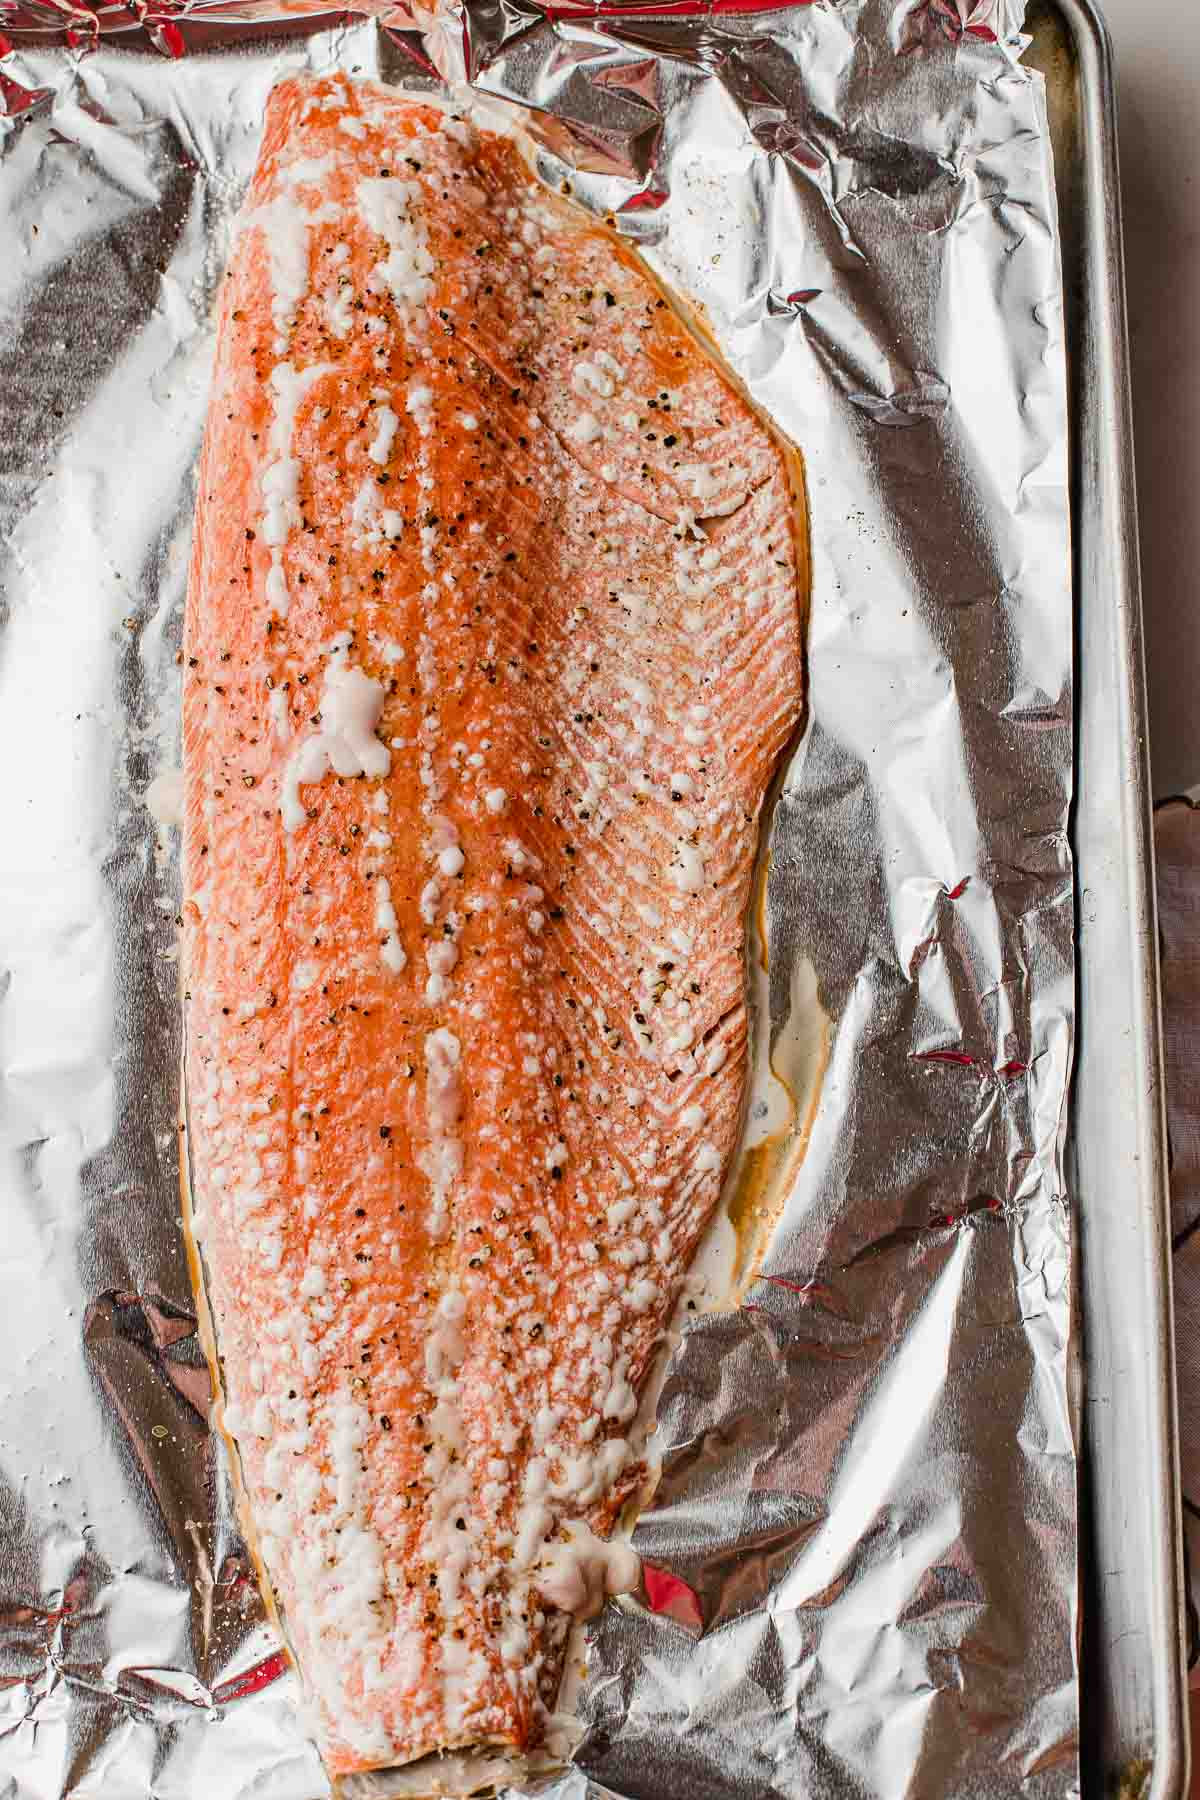 The salmon fillet after being taken out of the oven.